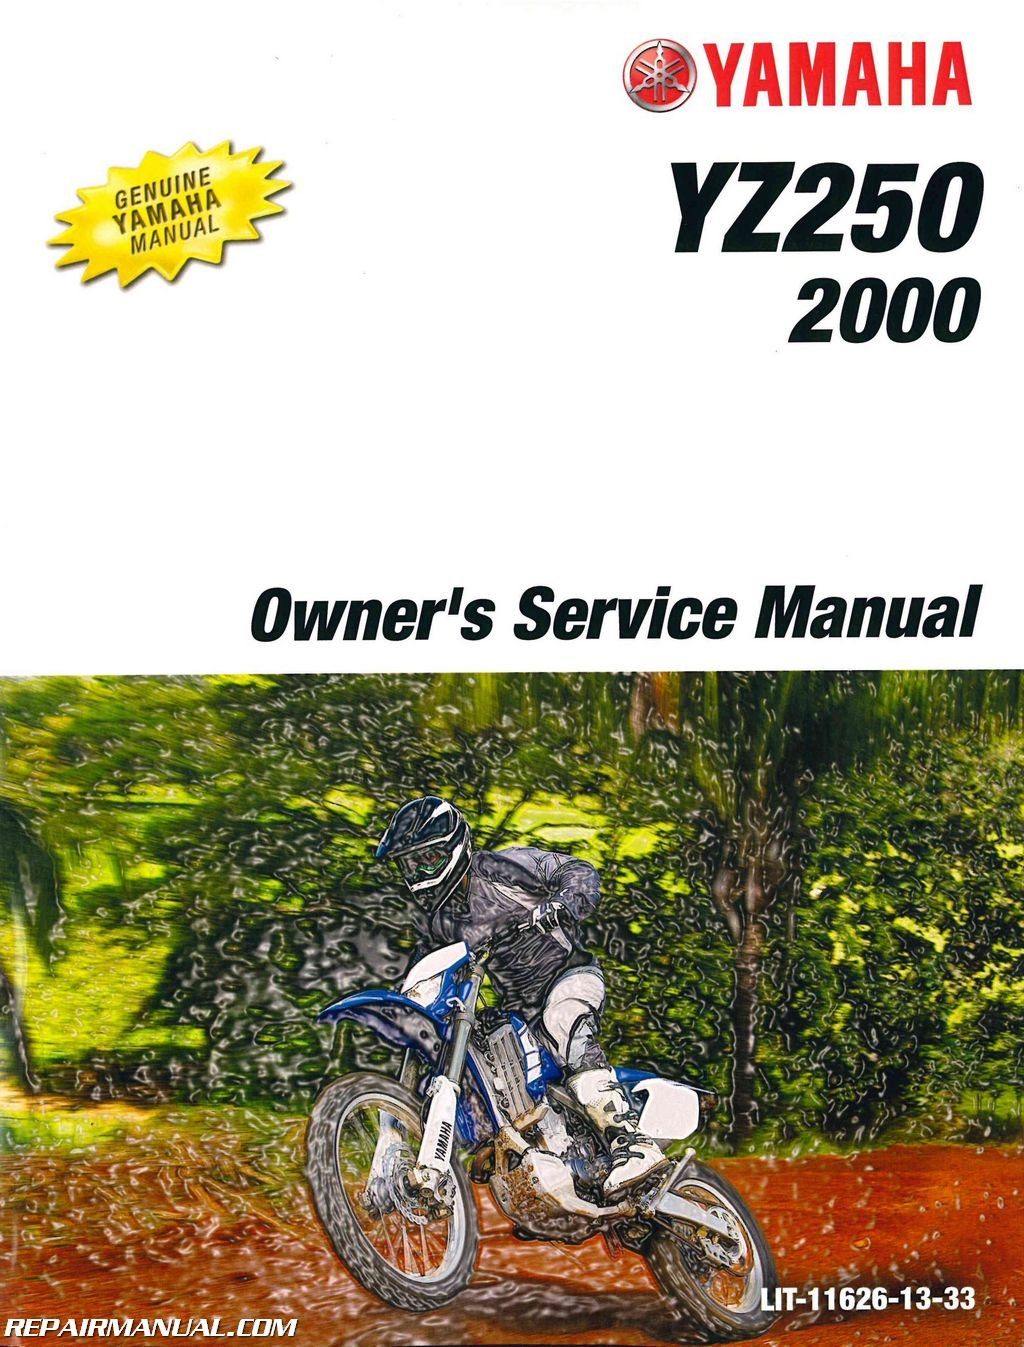 2000 Yz250 Wiring Diagram Manual Guide Yamaha Images Gallery